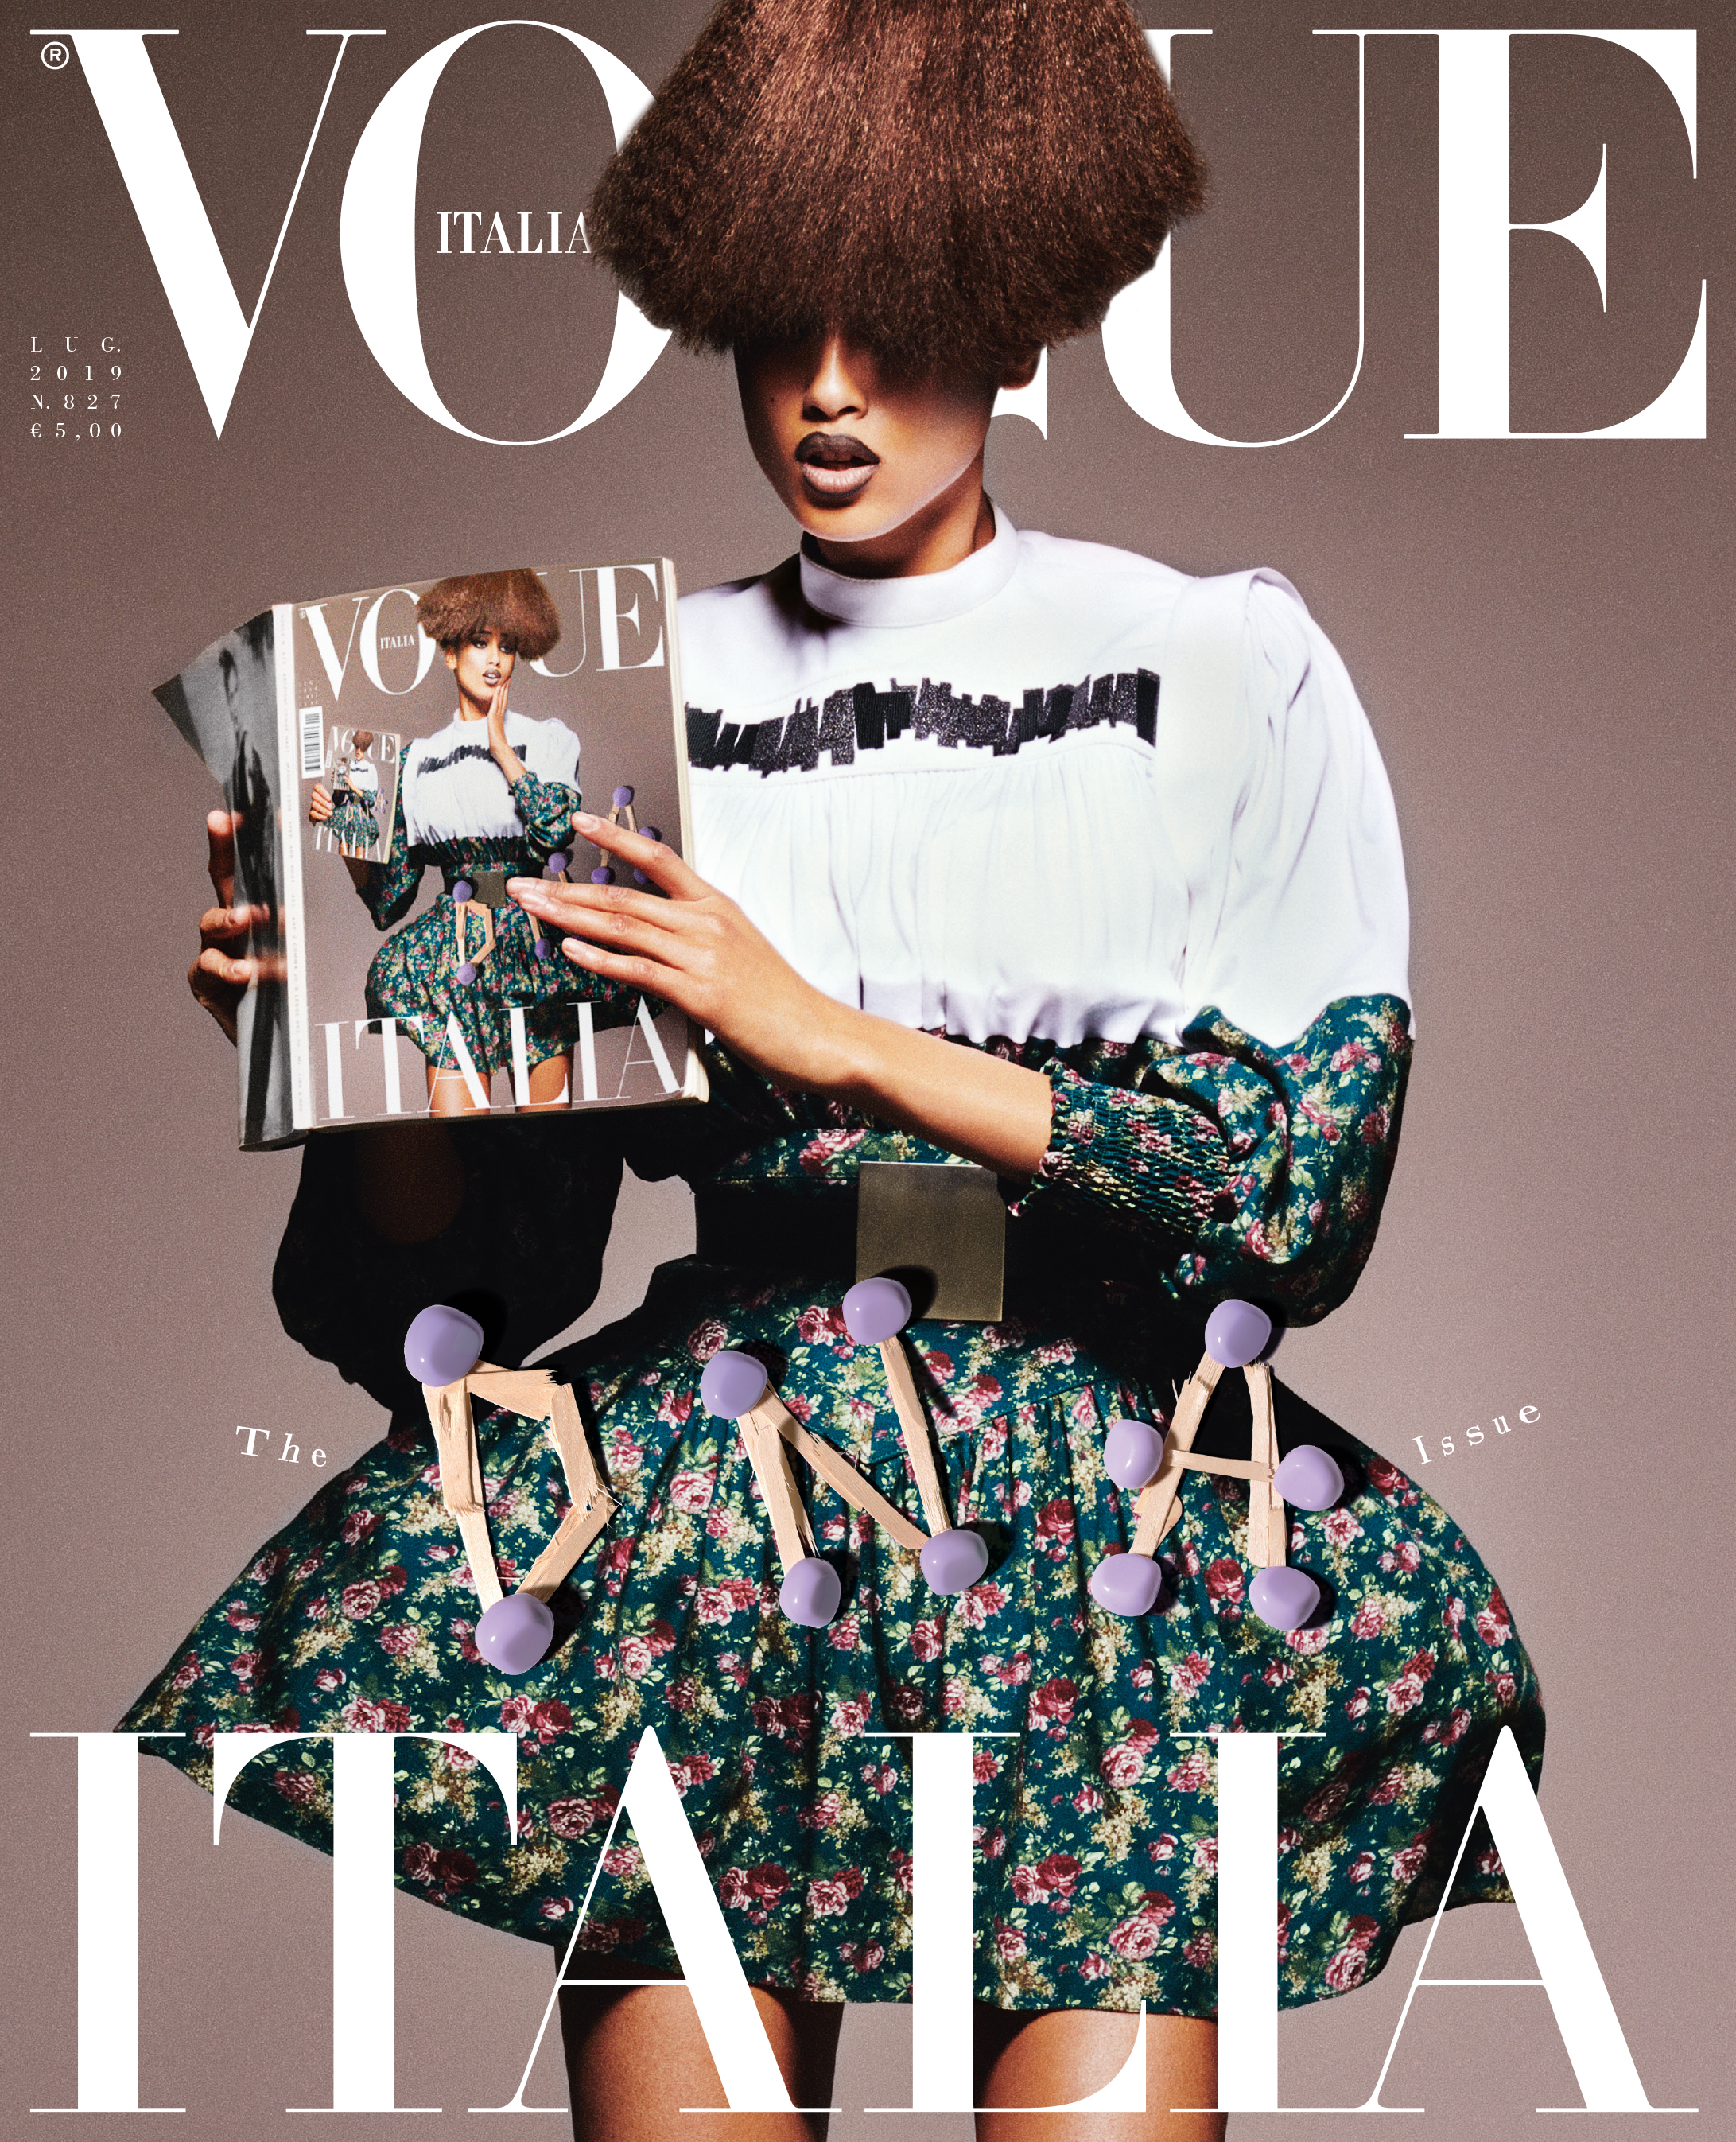 Imaan Hammam fronts the cover of Vogue Italia's July issue.